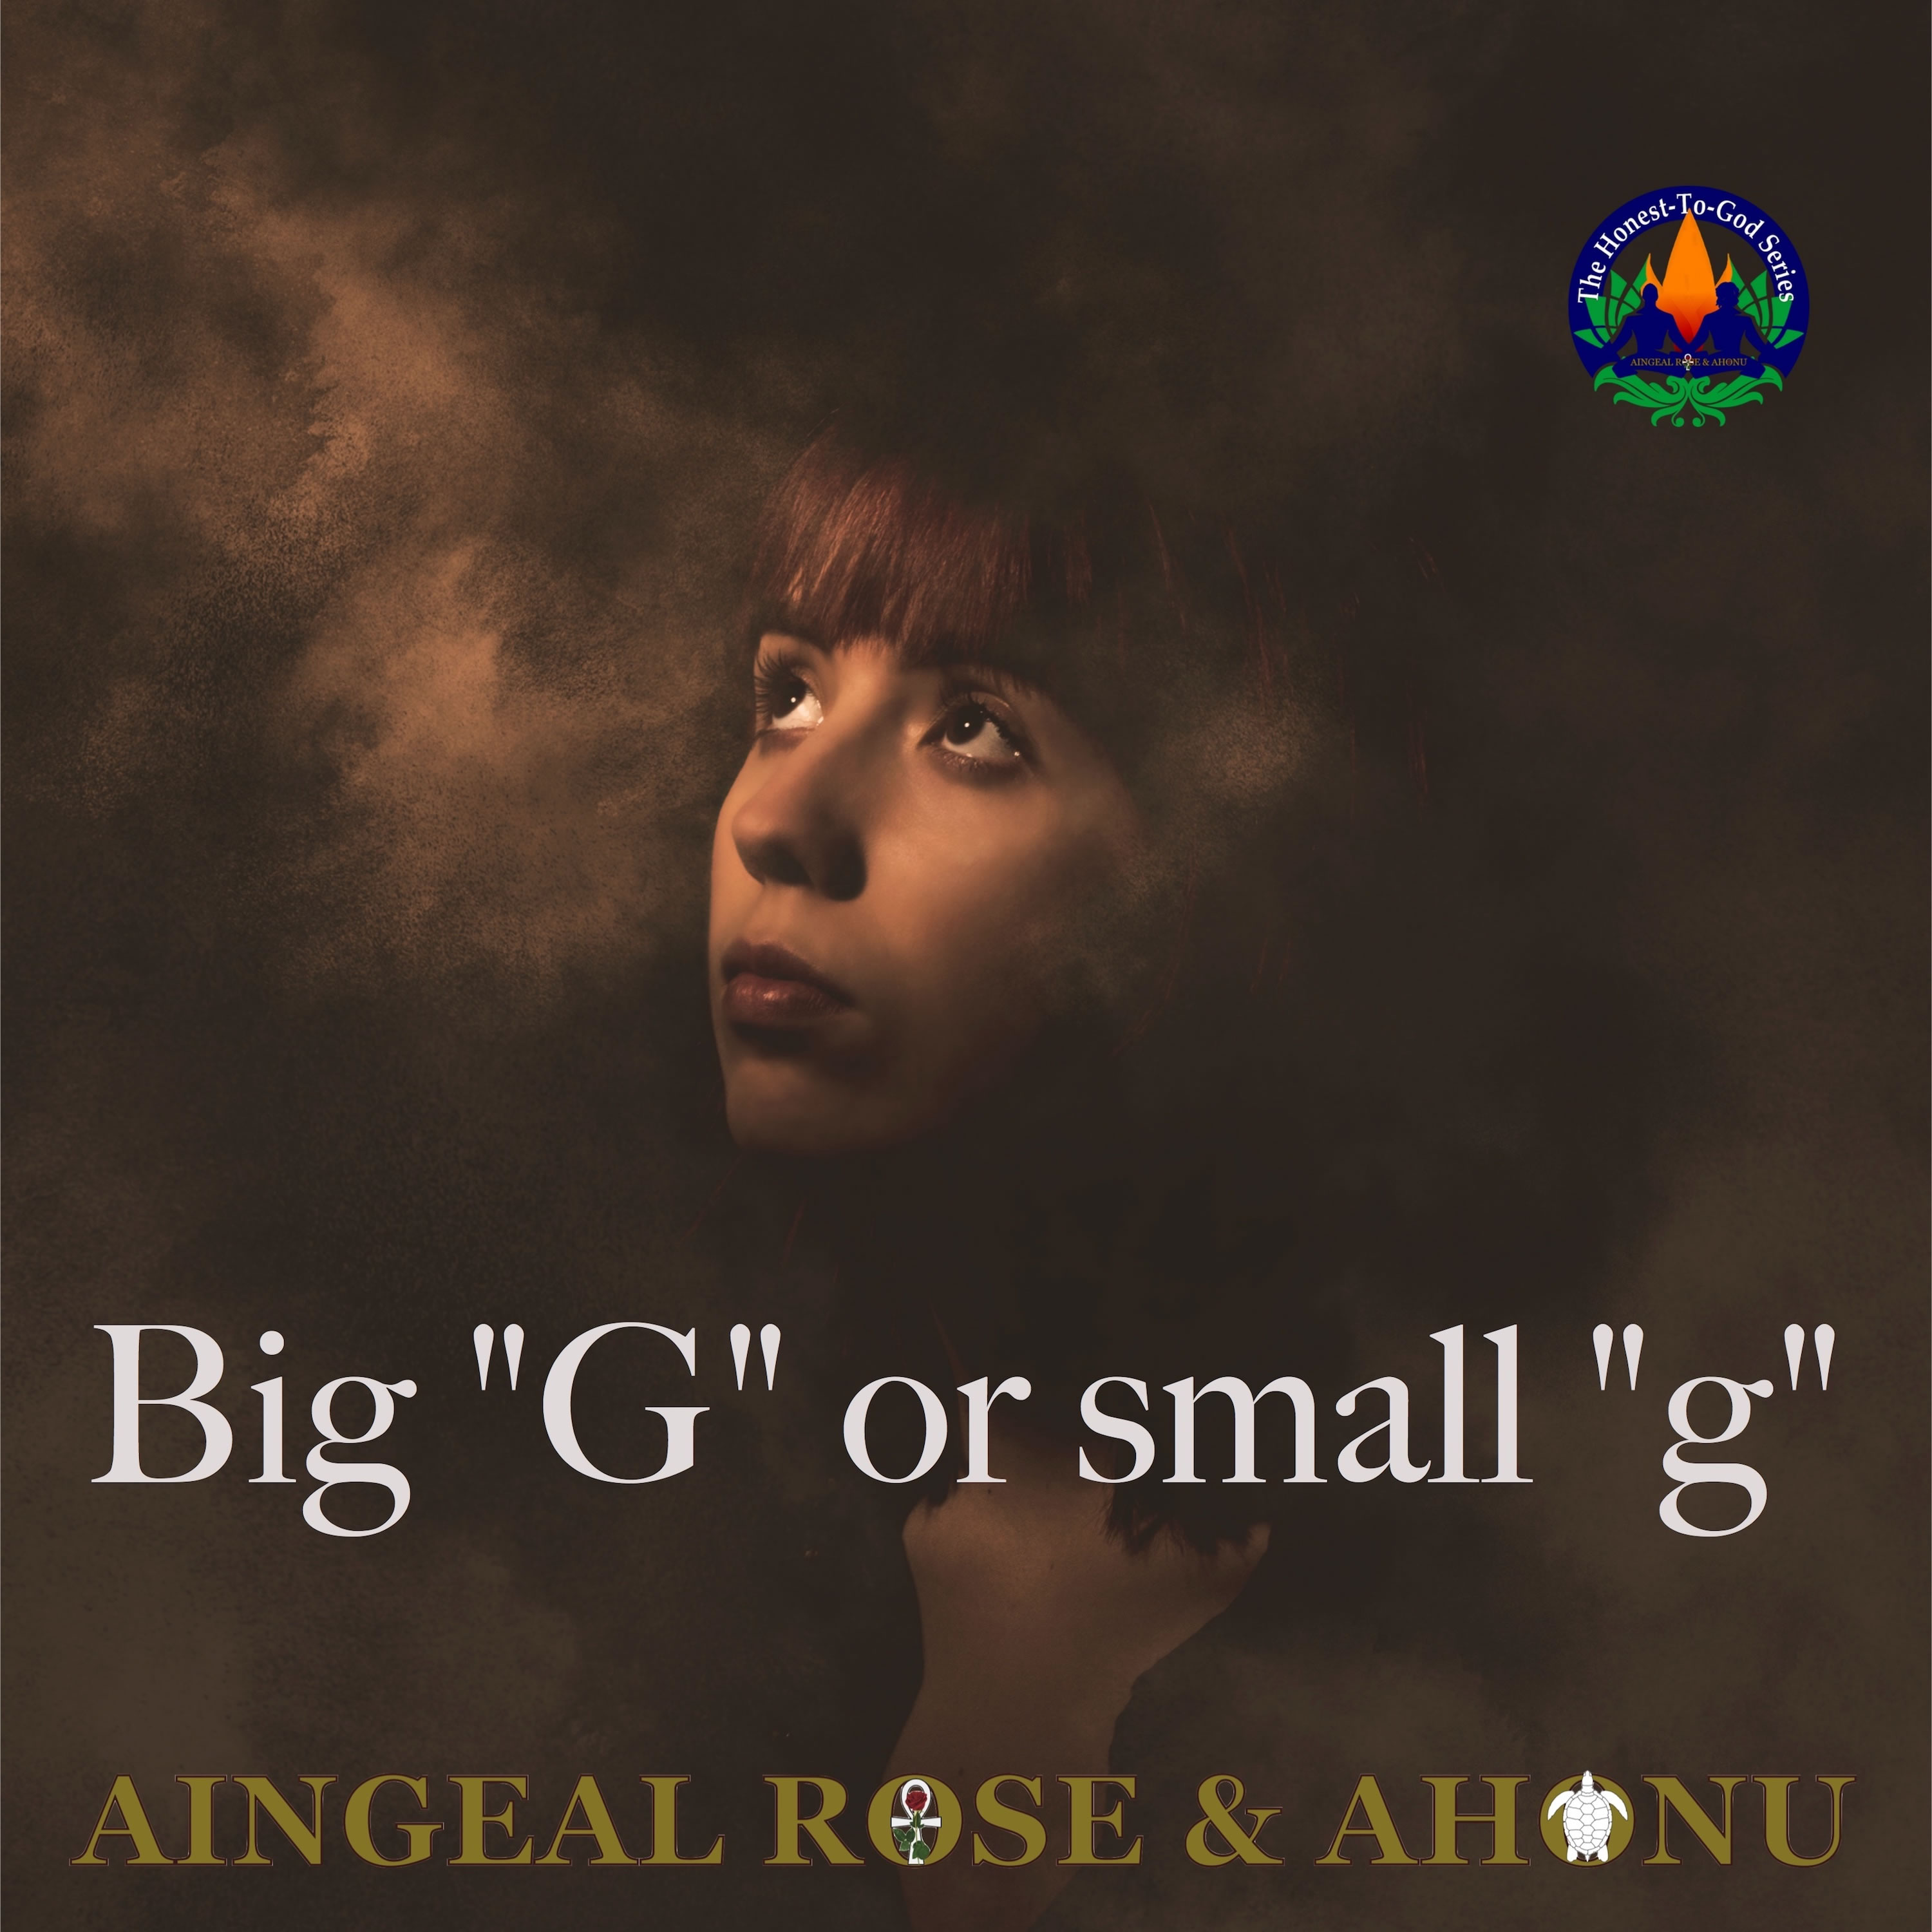 286: God - Big G or small g